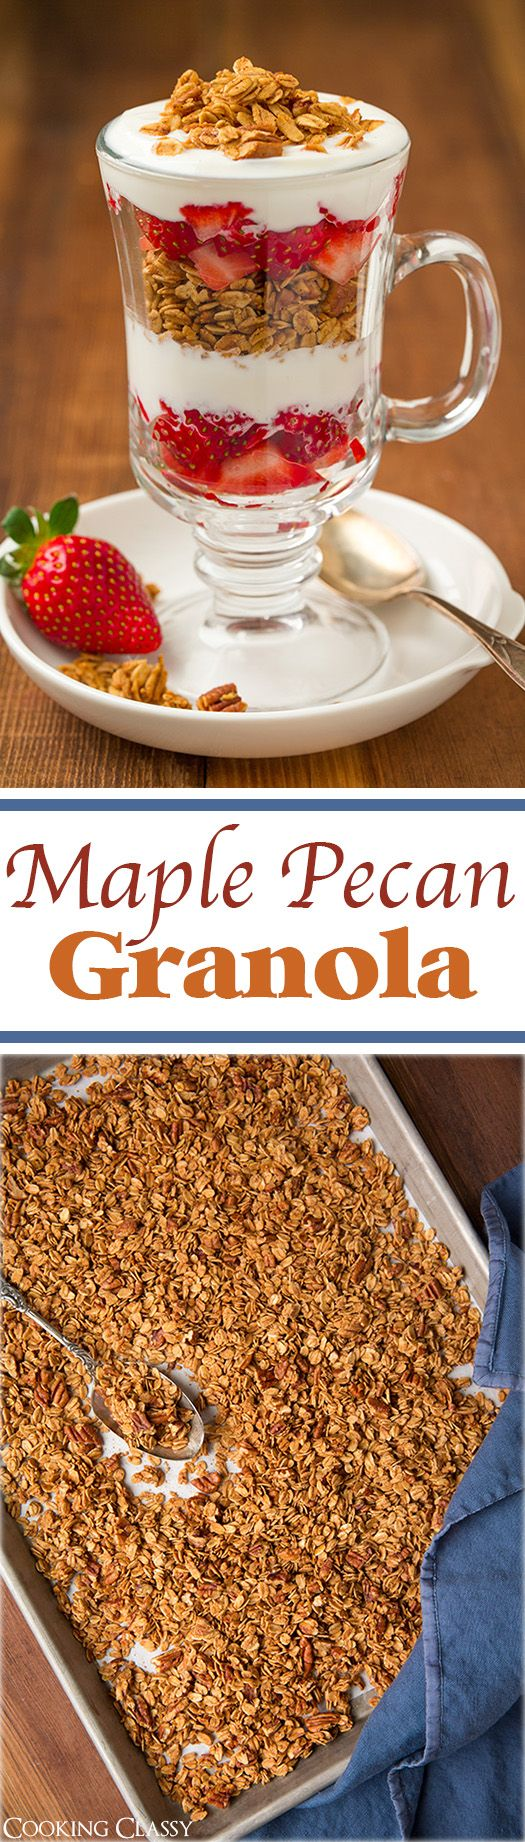 Maple Pecan Granola - This is so easy to make it it's my FAVORITE granola recipe! Only uses 3 Tbsp oil and mostly sweetened with maple syrup.